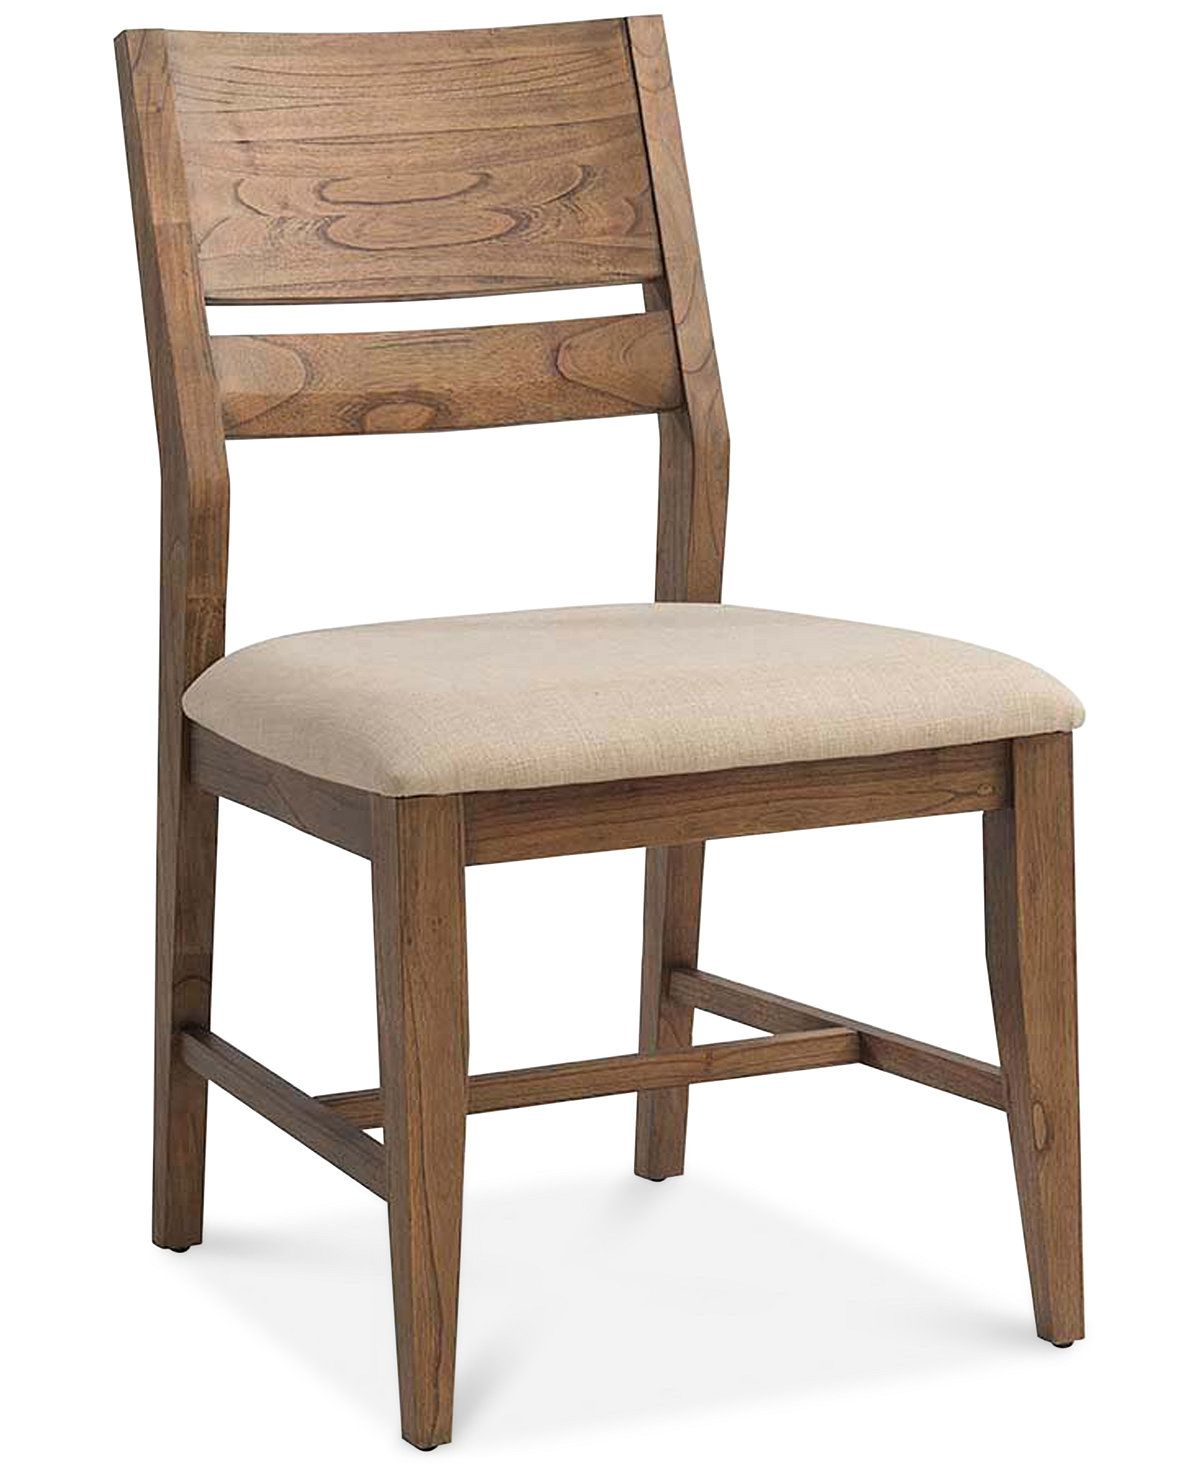 Athena dining side chair furniture macys 4179 table too wide and long